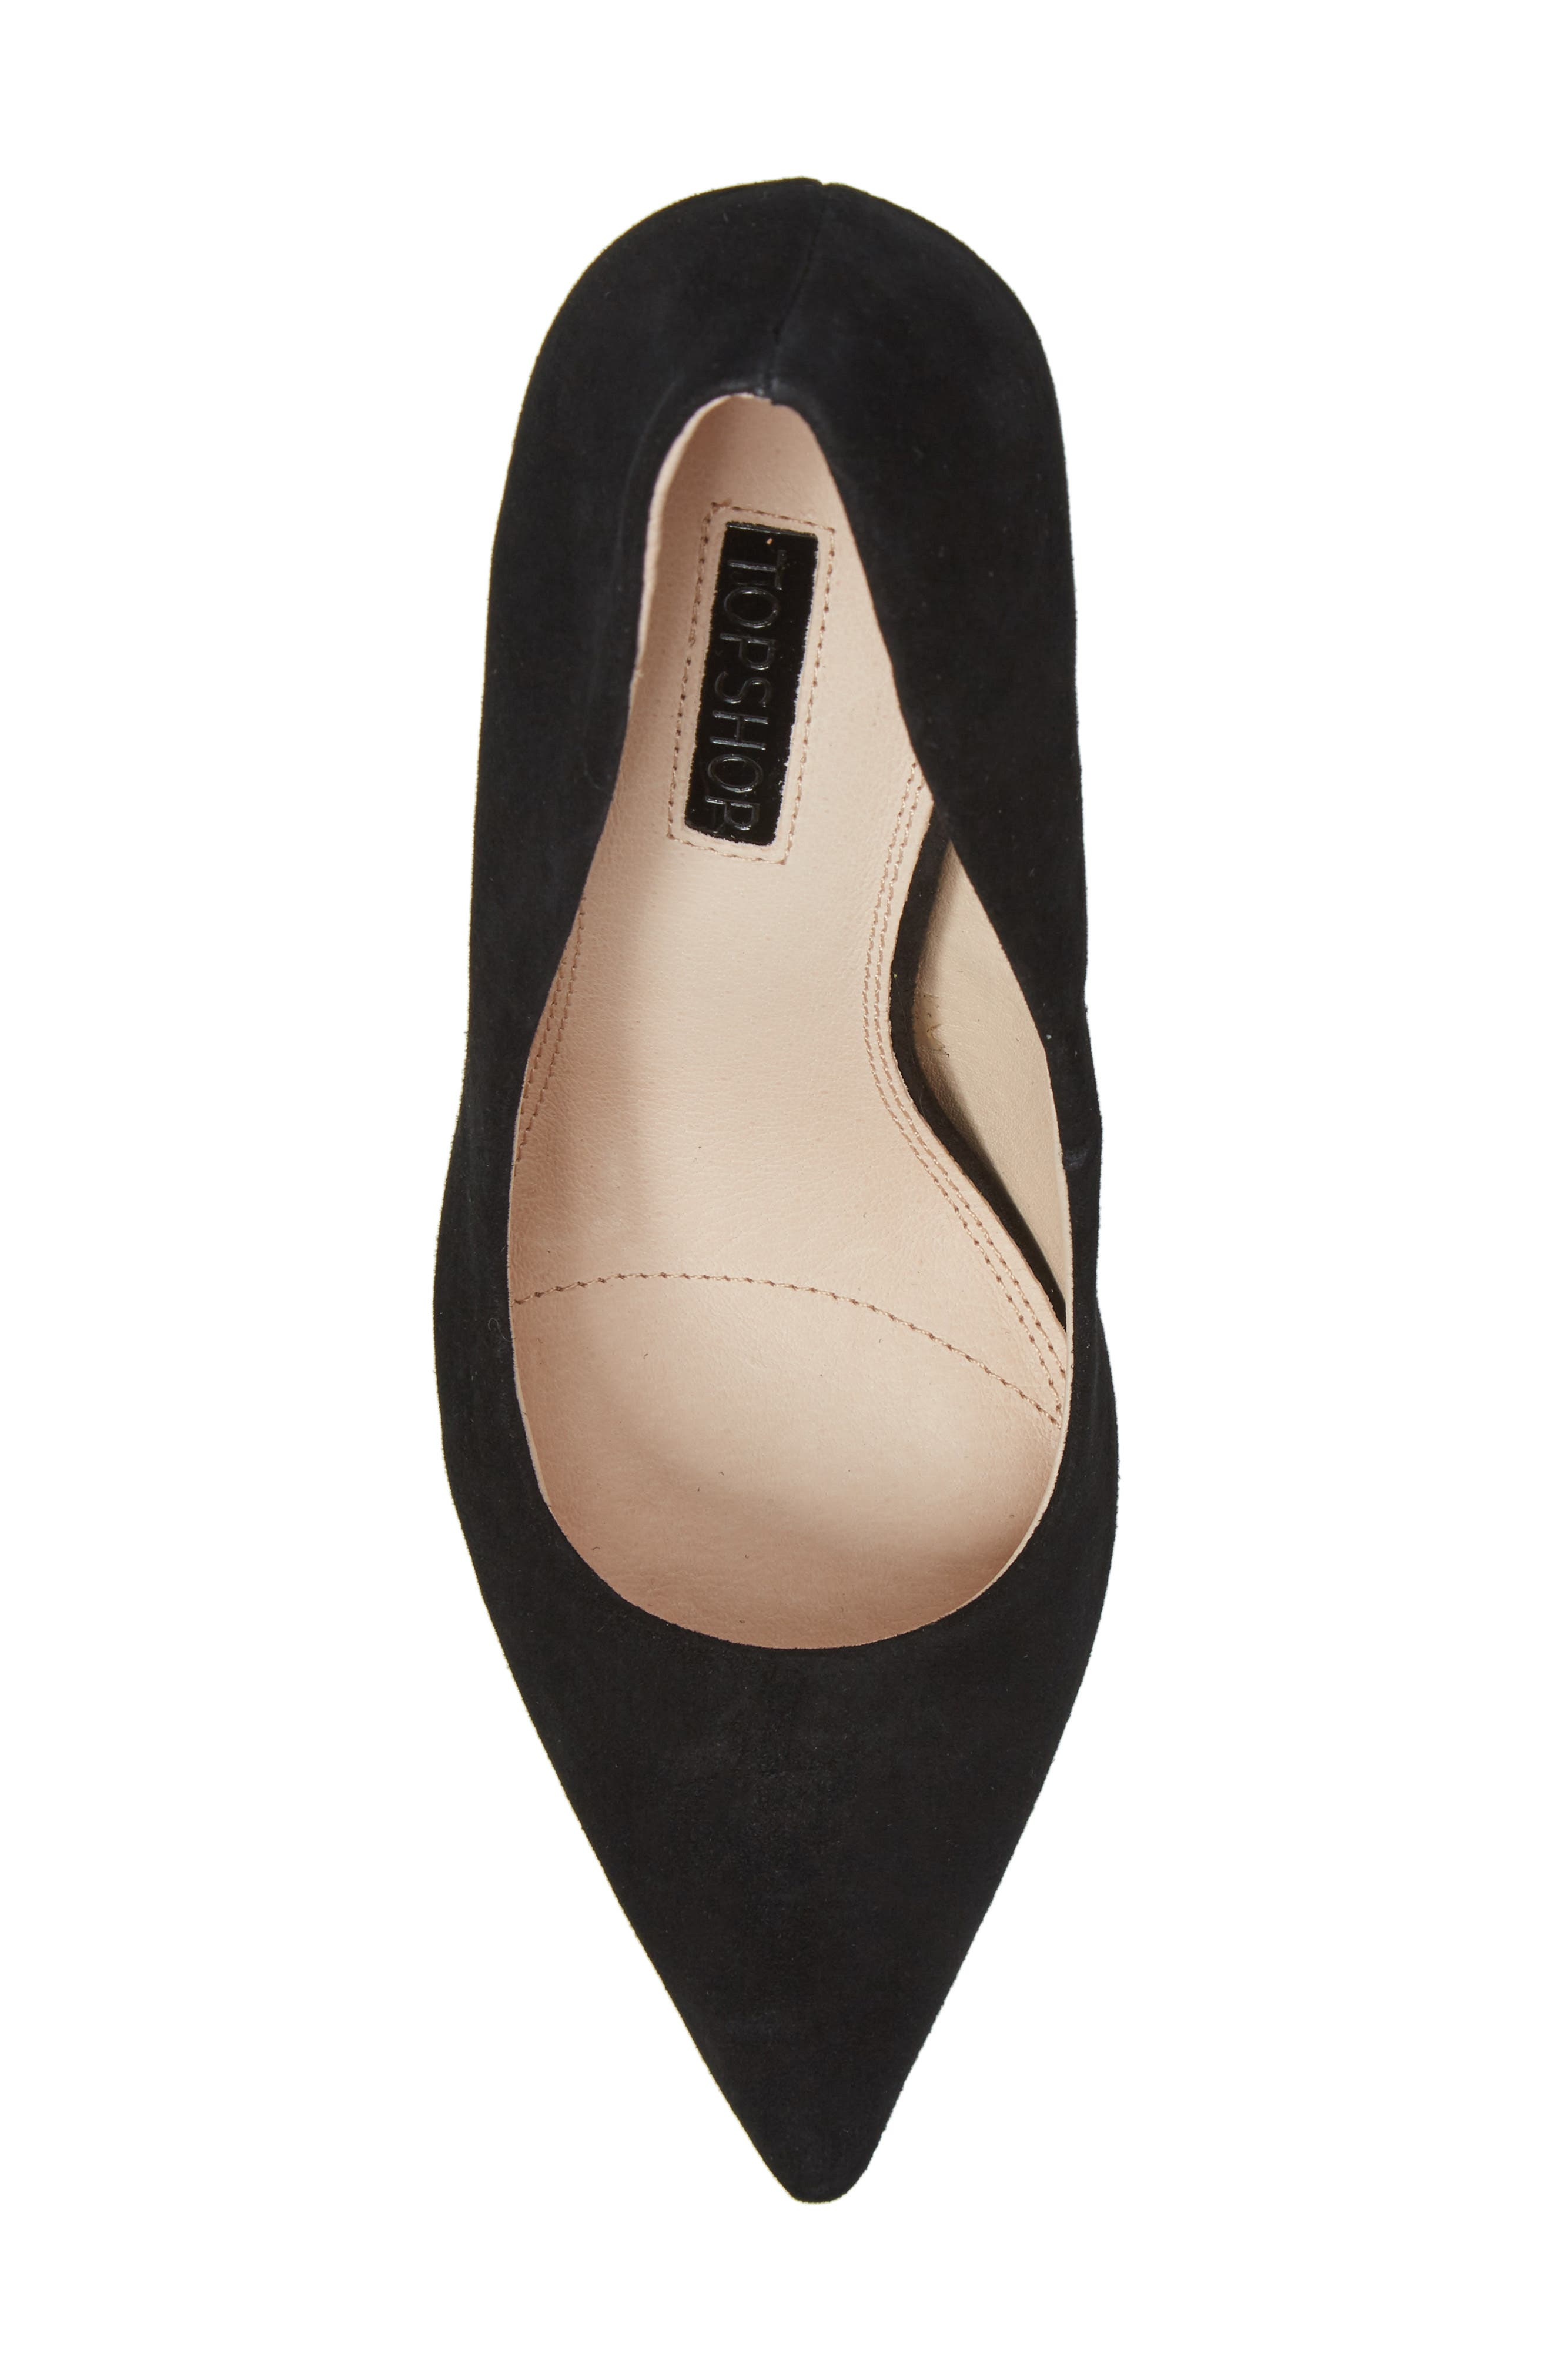 TOPSHOP,                             Grammer Pointy Toe Pump,                             Alternate thumbnail 5, color,                             001